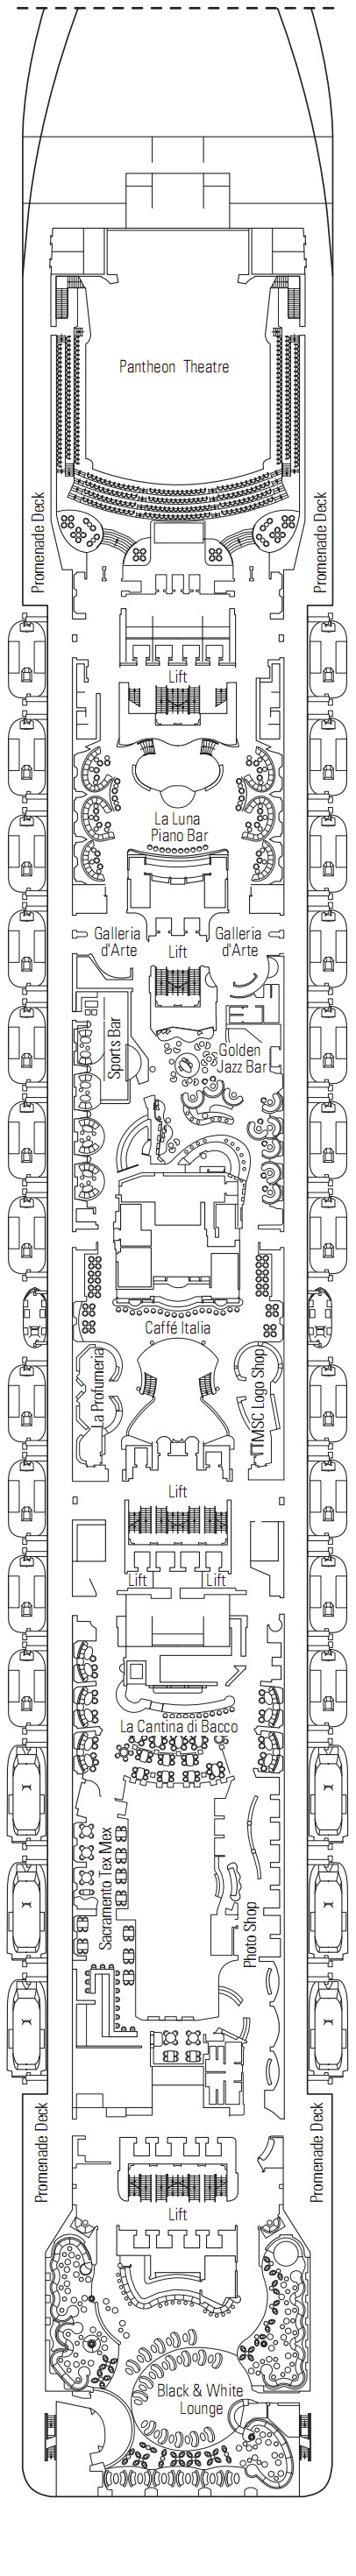 MSC Divina Apollo Deck 7 layout